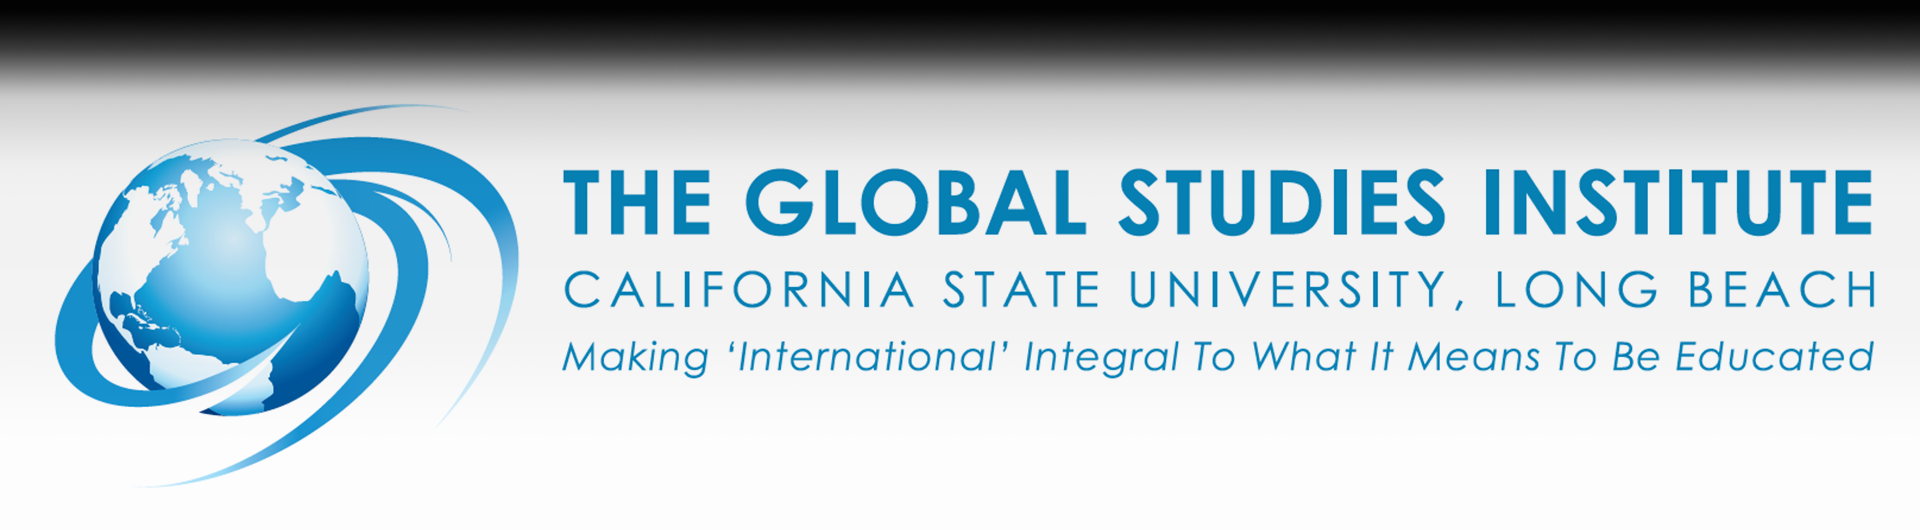 Global Studies Institute